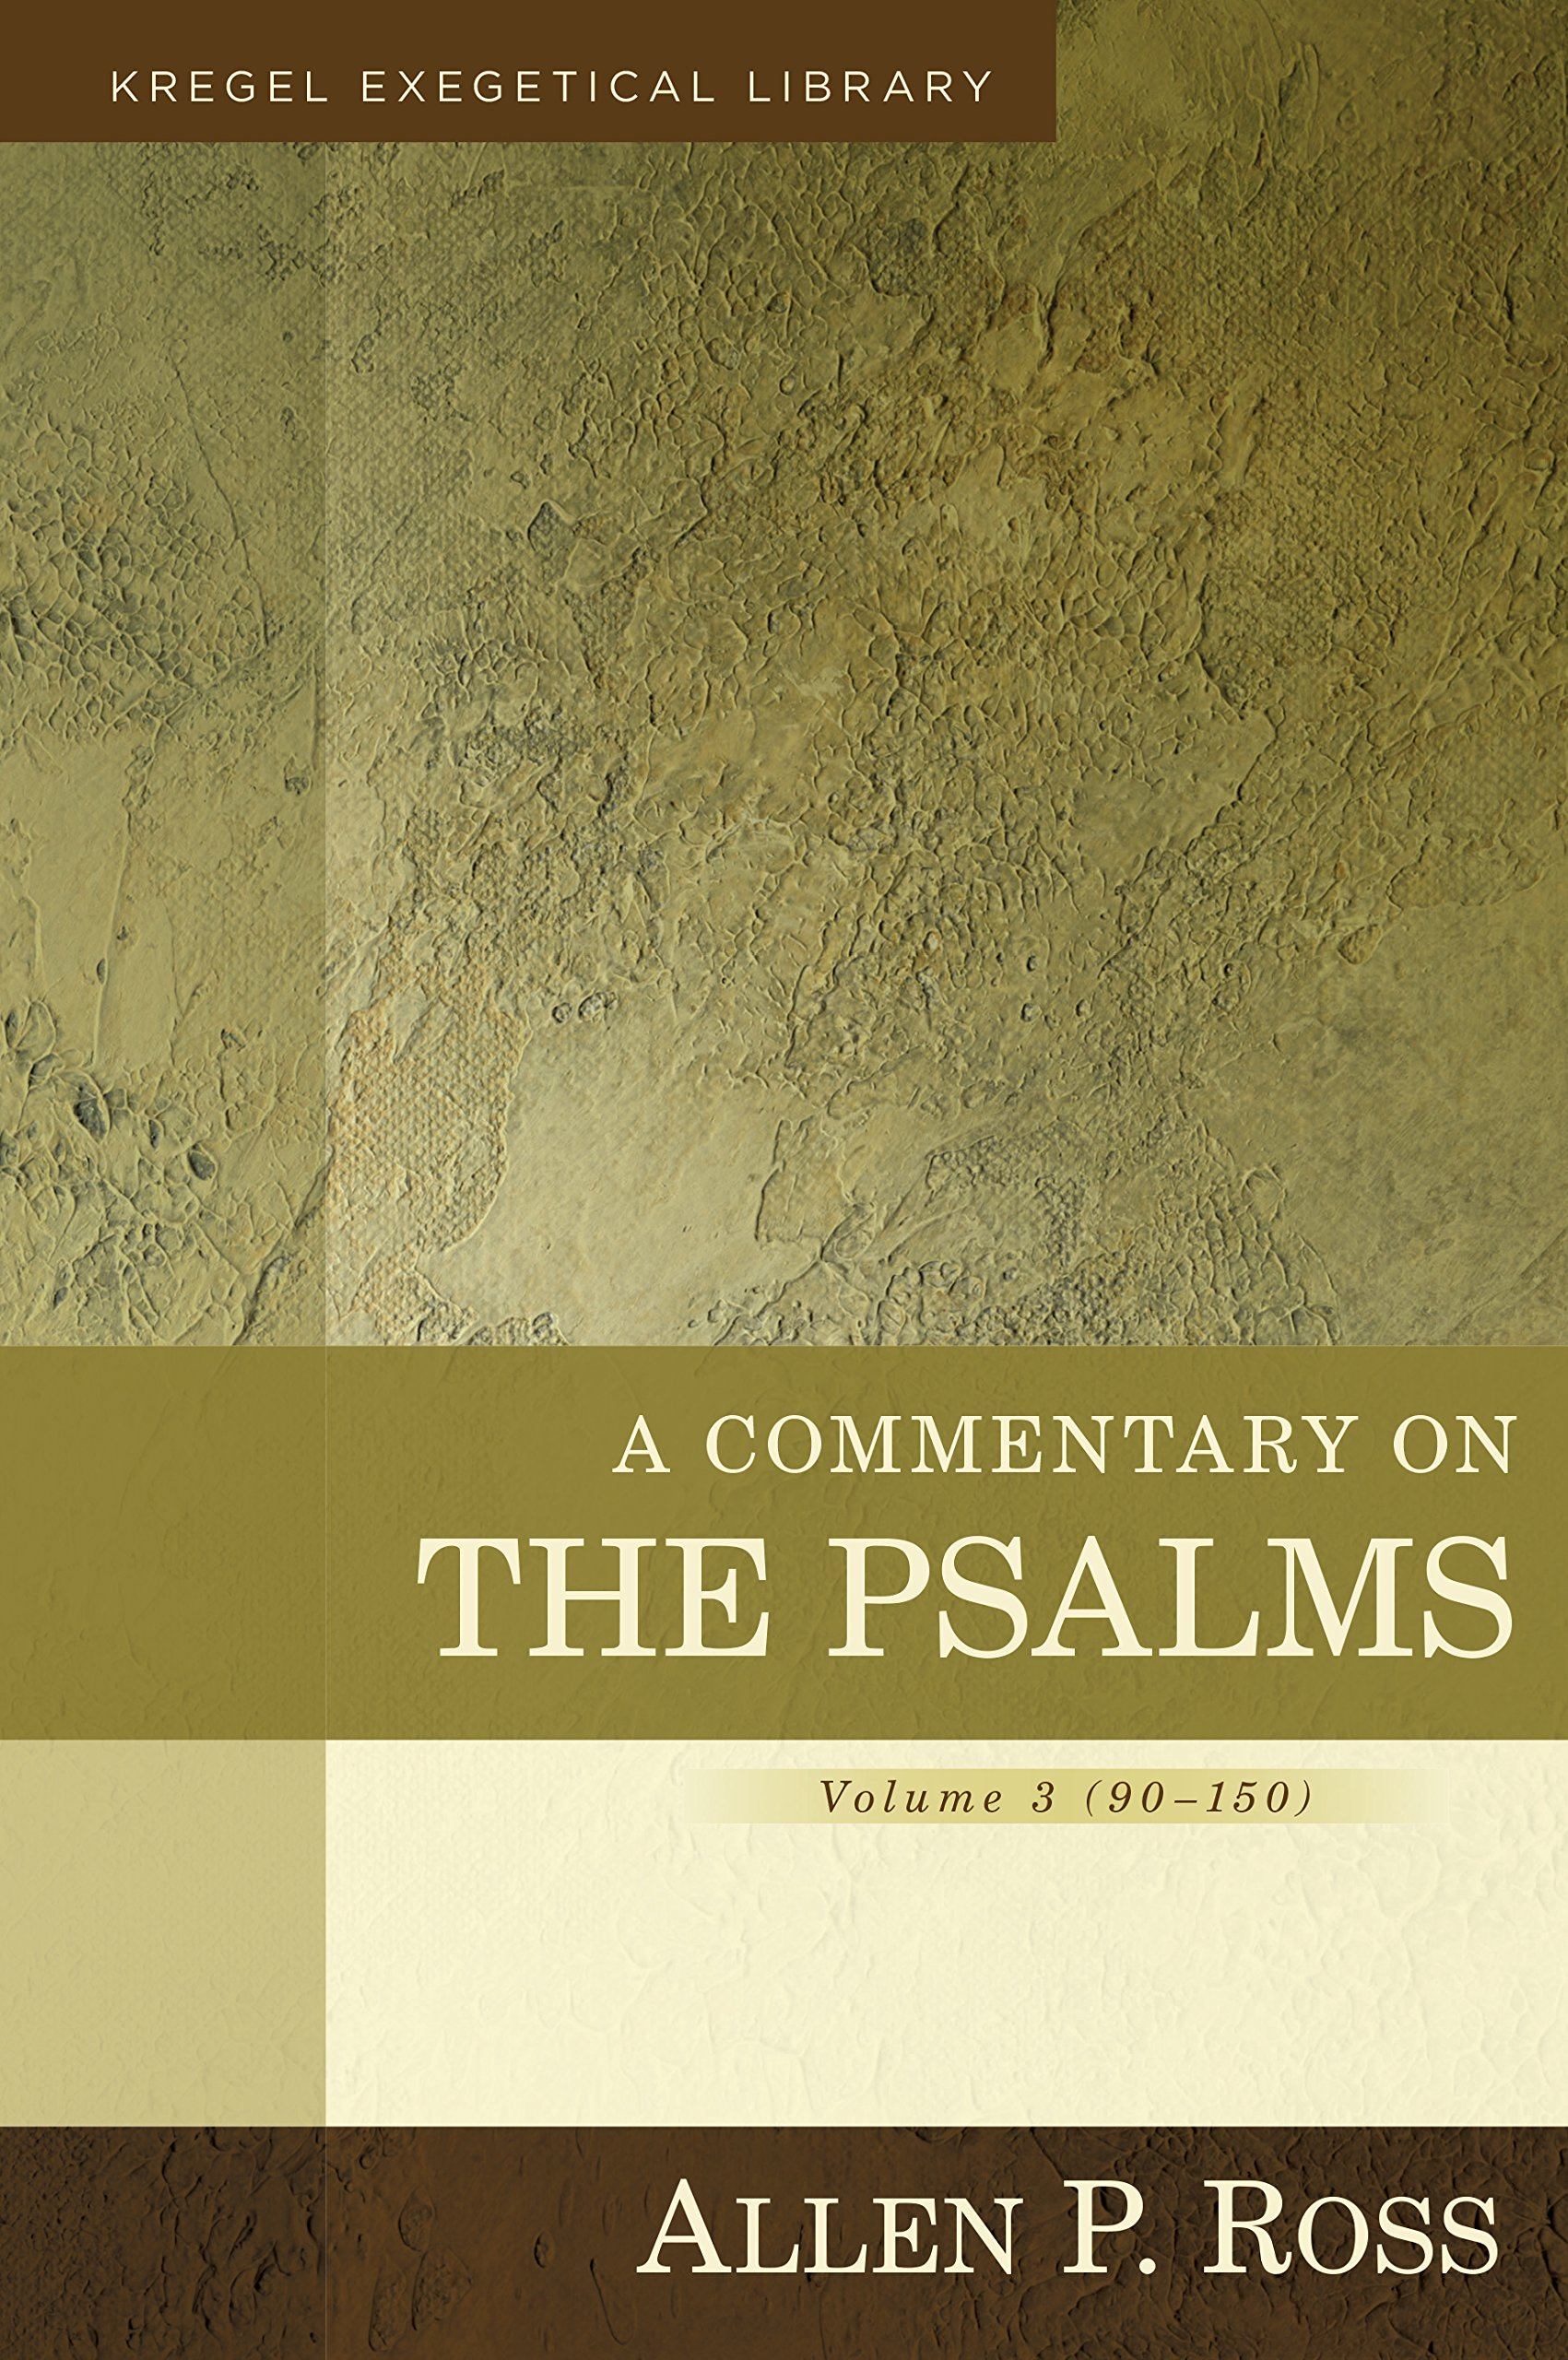 A Commentary on the Psalms: 90-150 (Kregel Exegetical Library